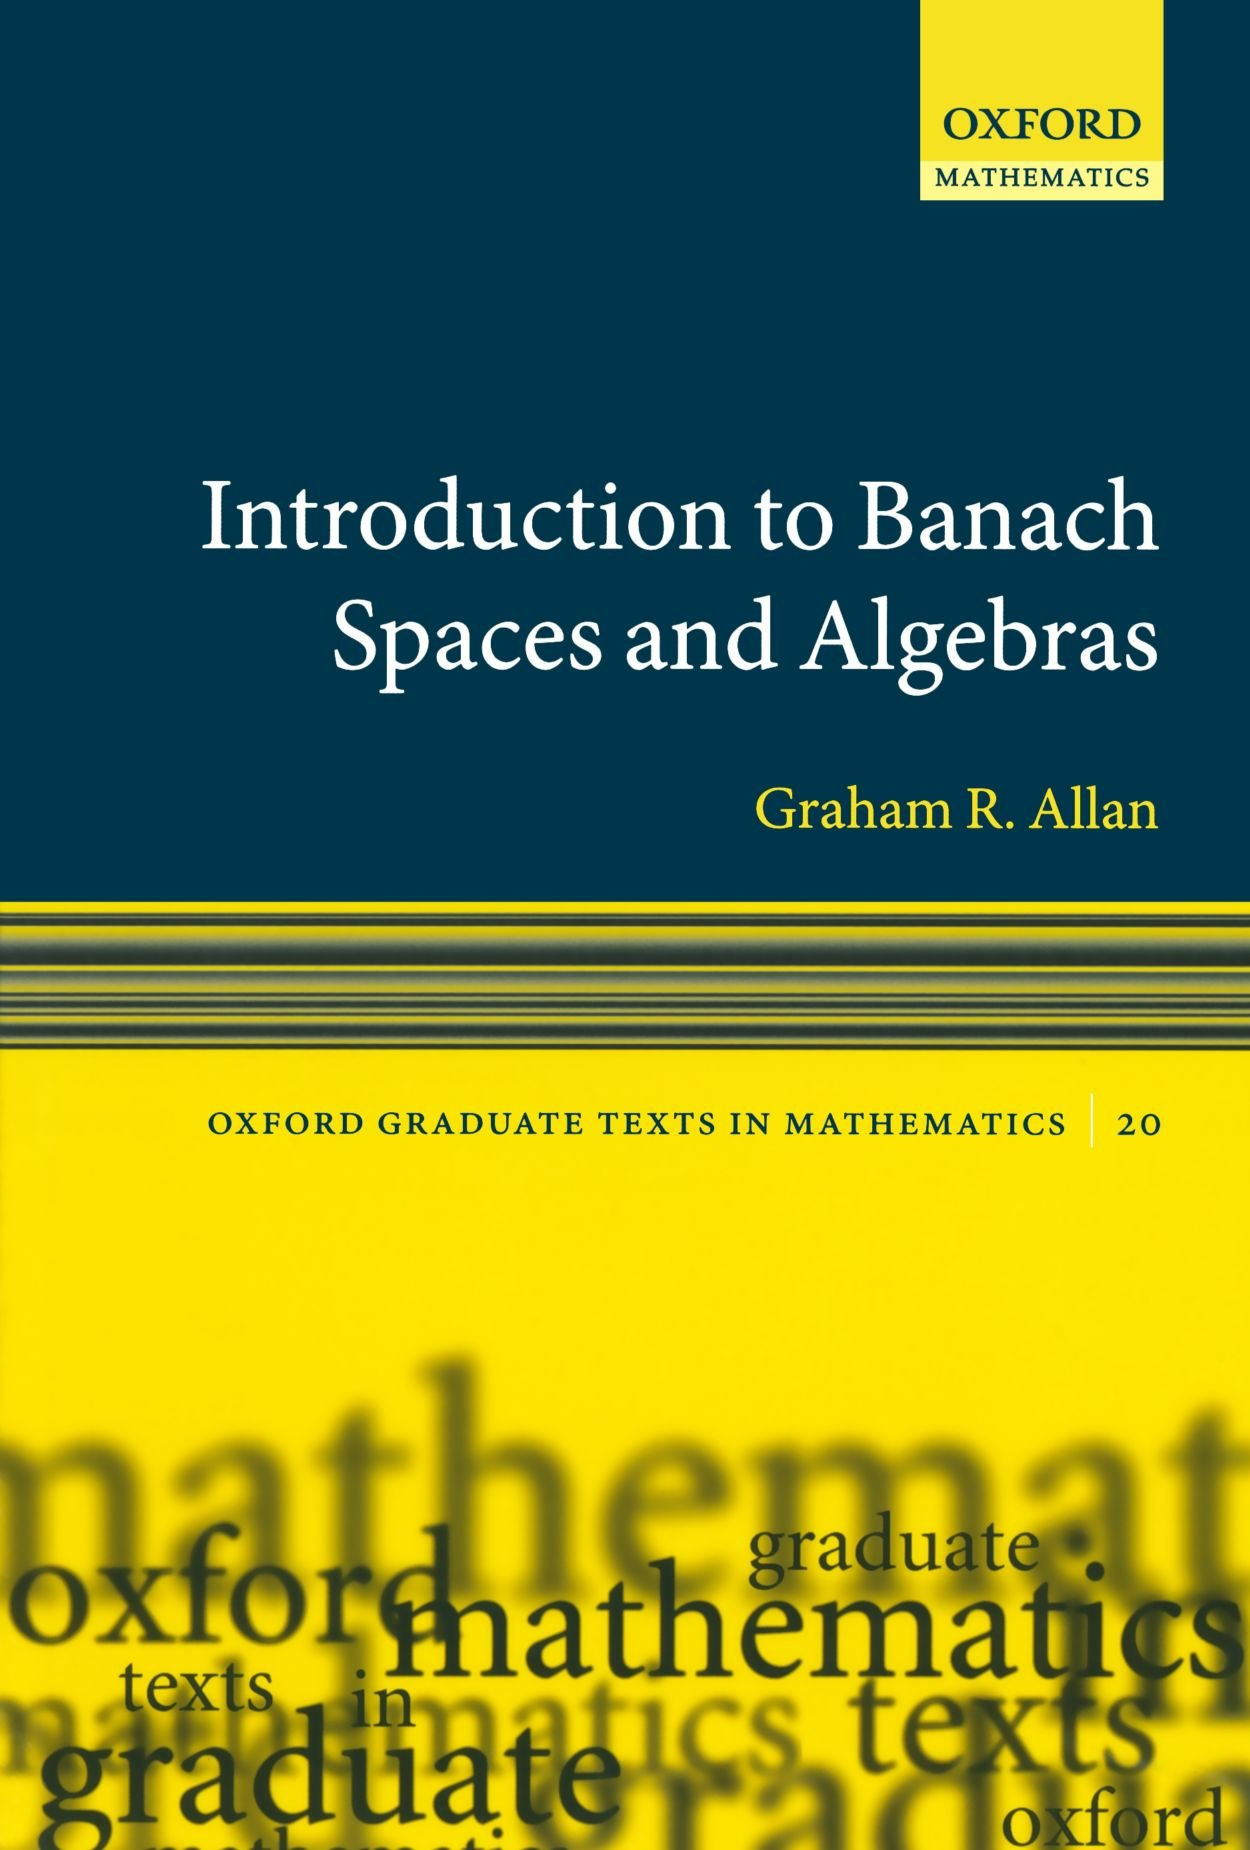 Introduction To Banach Spaces And Algebras (Oxford Graduate Texts In ...